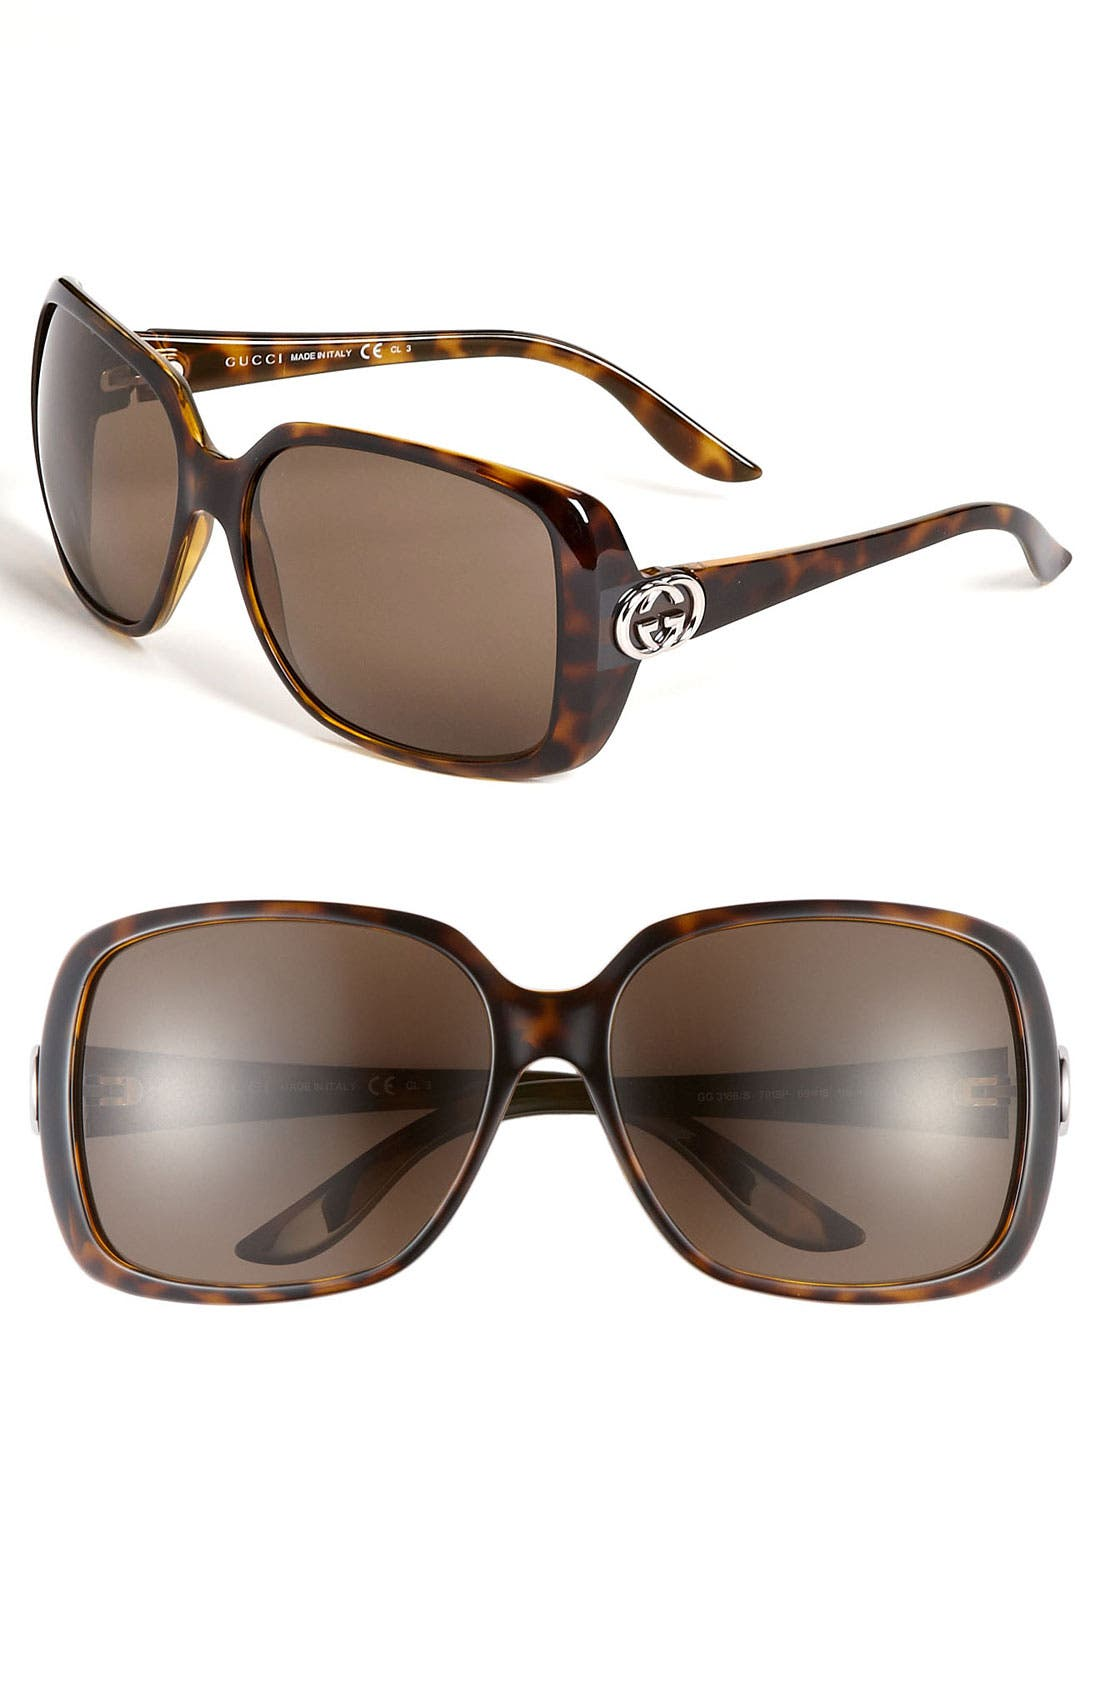 Main Image - Gucci 59mm Polarized Sunglasses